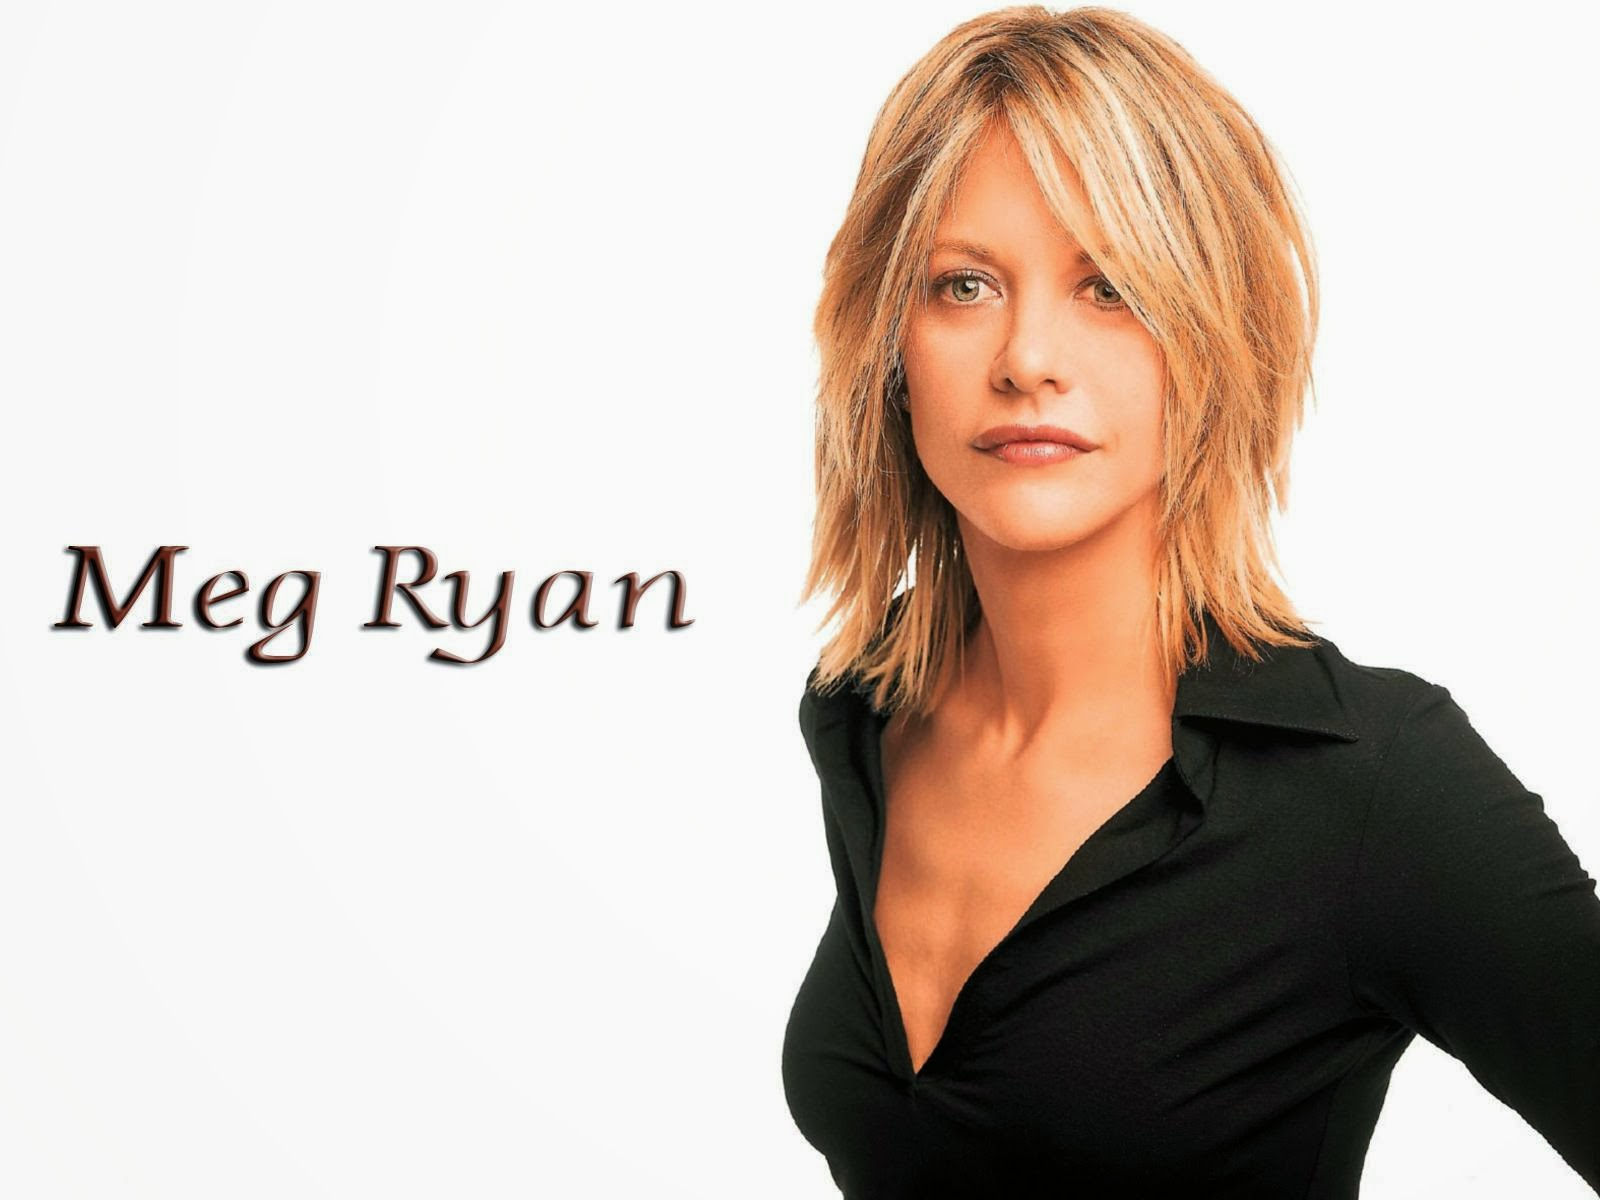 Meg Ryan in Black T-Shirt